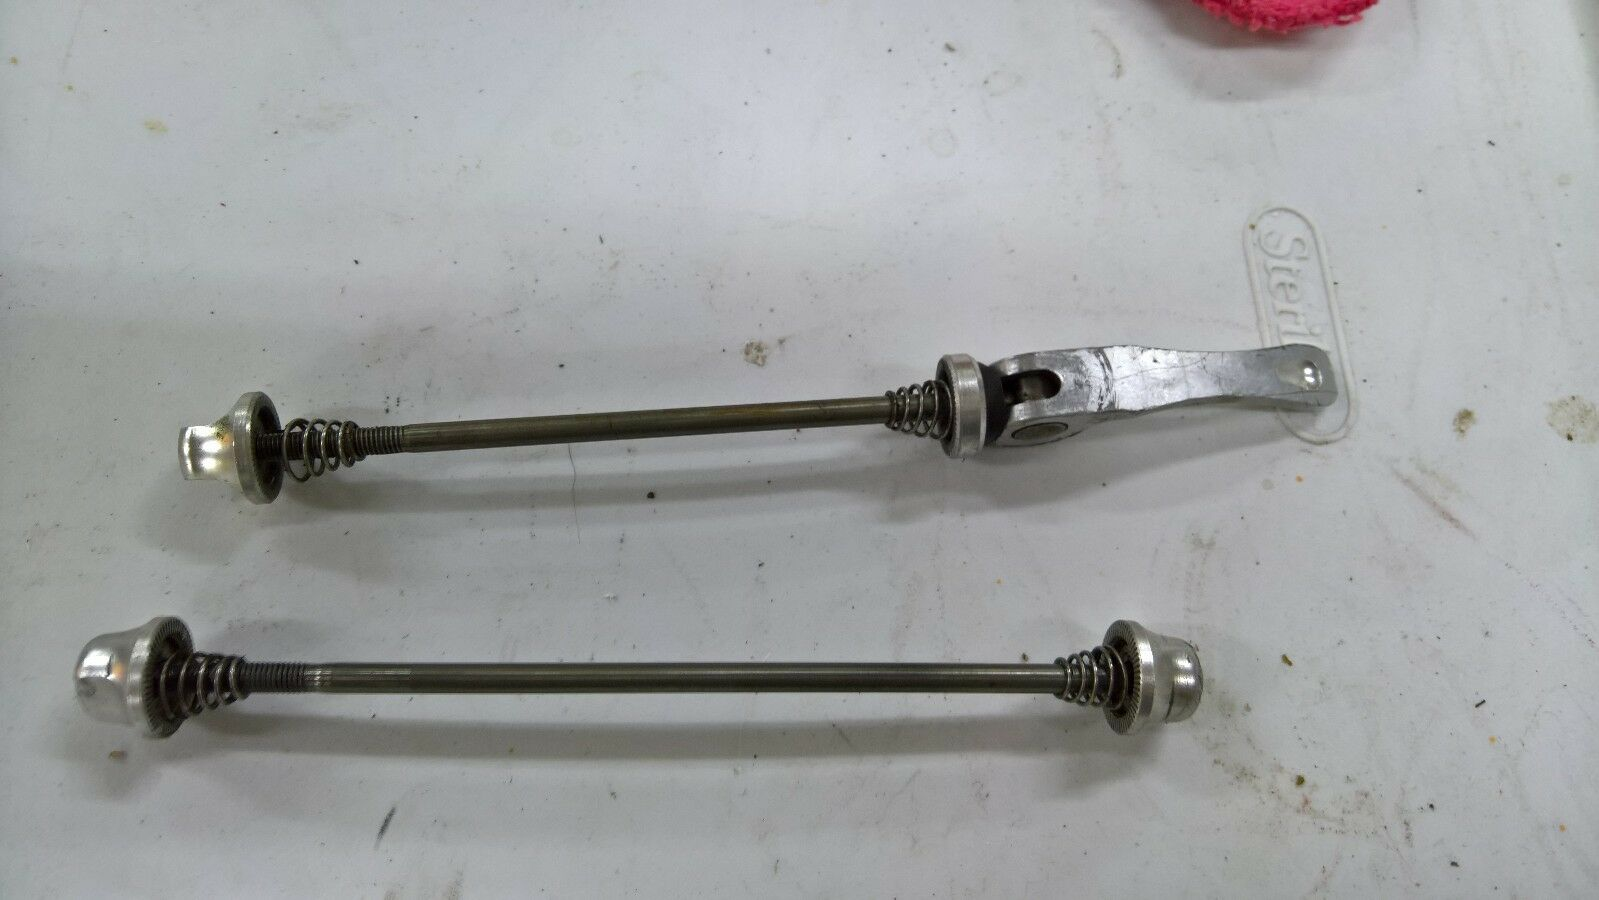 Vintage Control Tech Titanium Skewers - Awesome